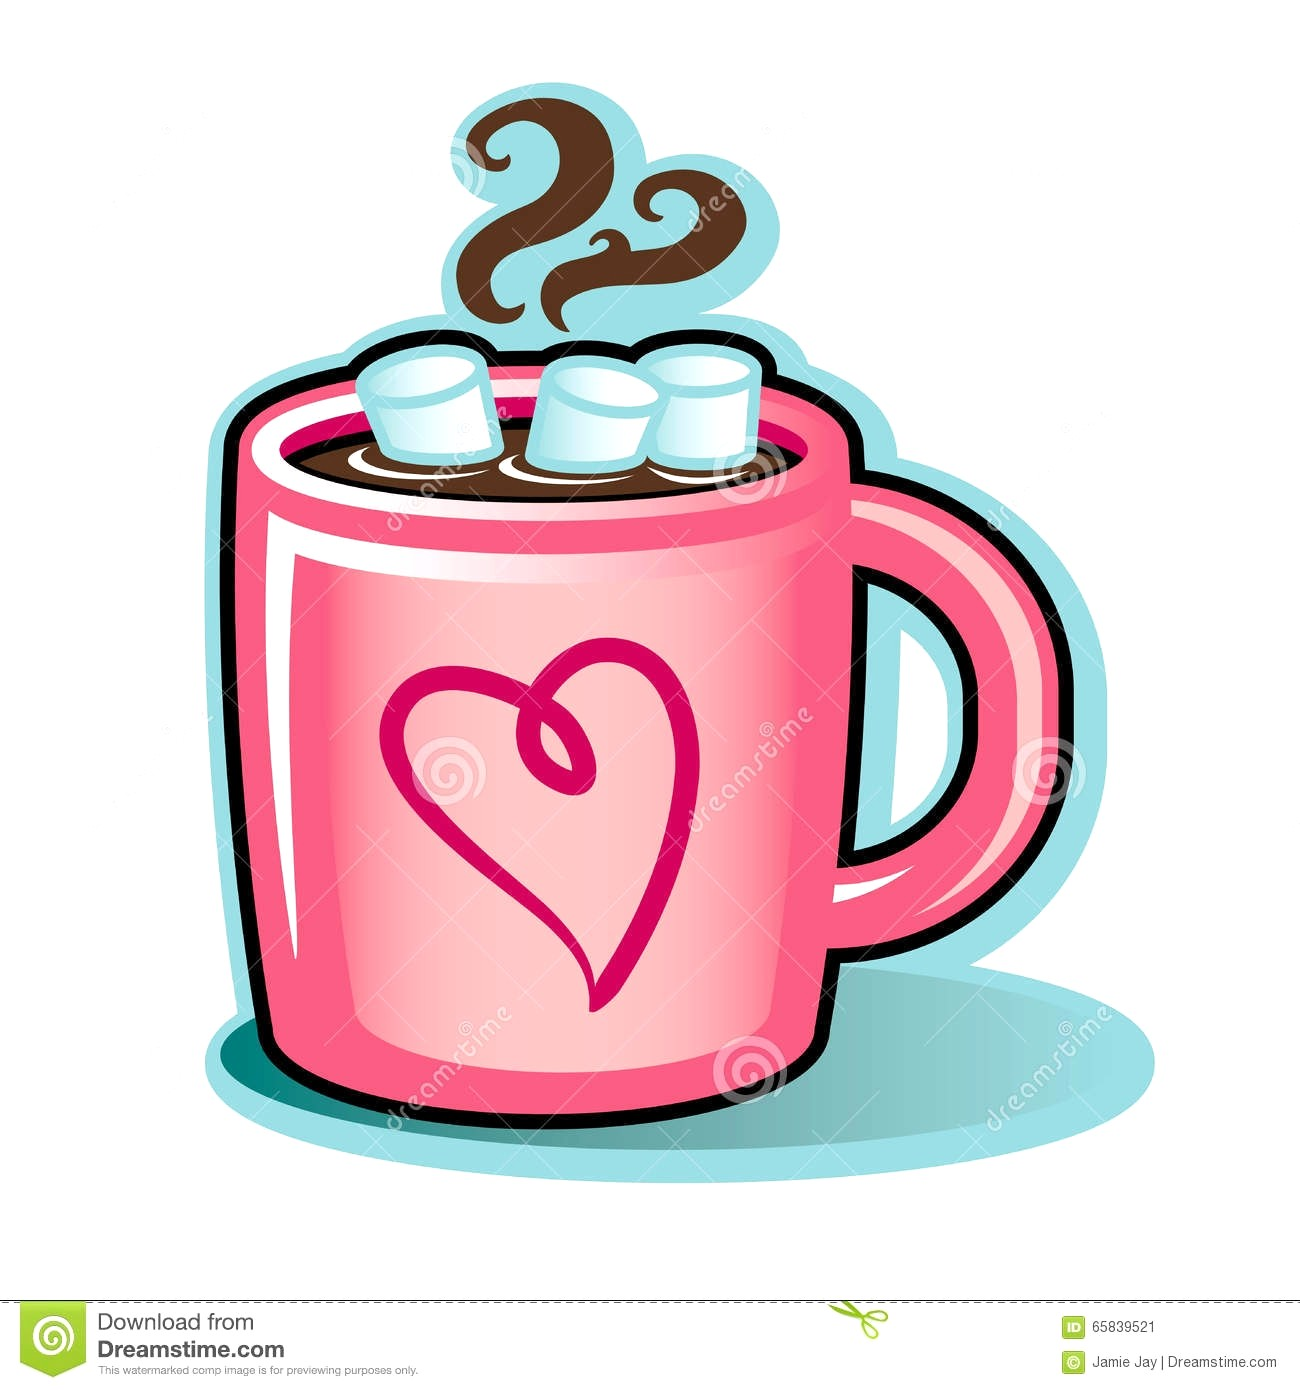 Hot cocoa with marshmallows clipart 1 » Clipart Station.